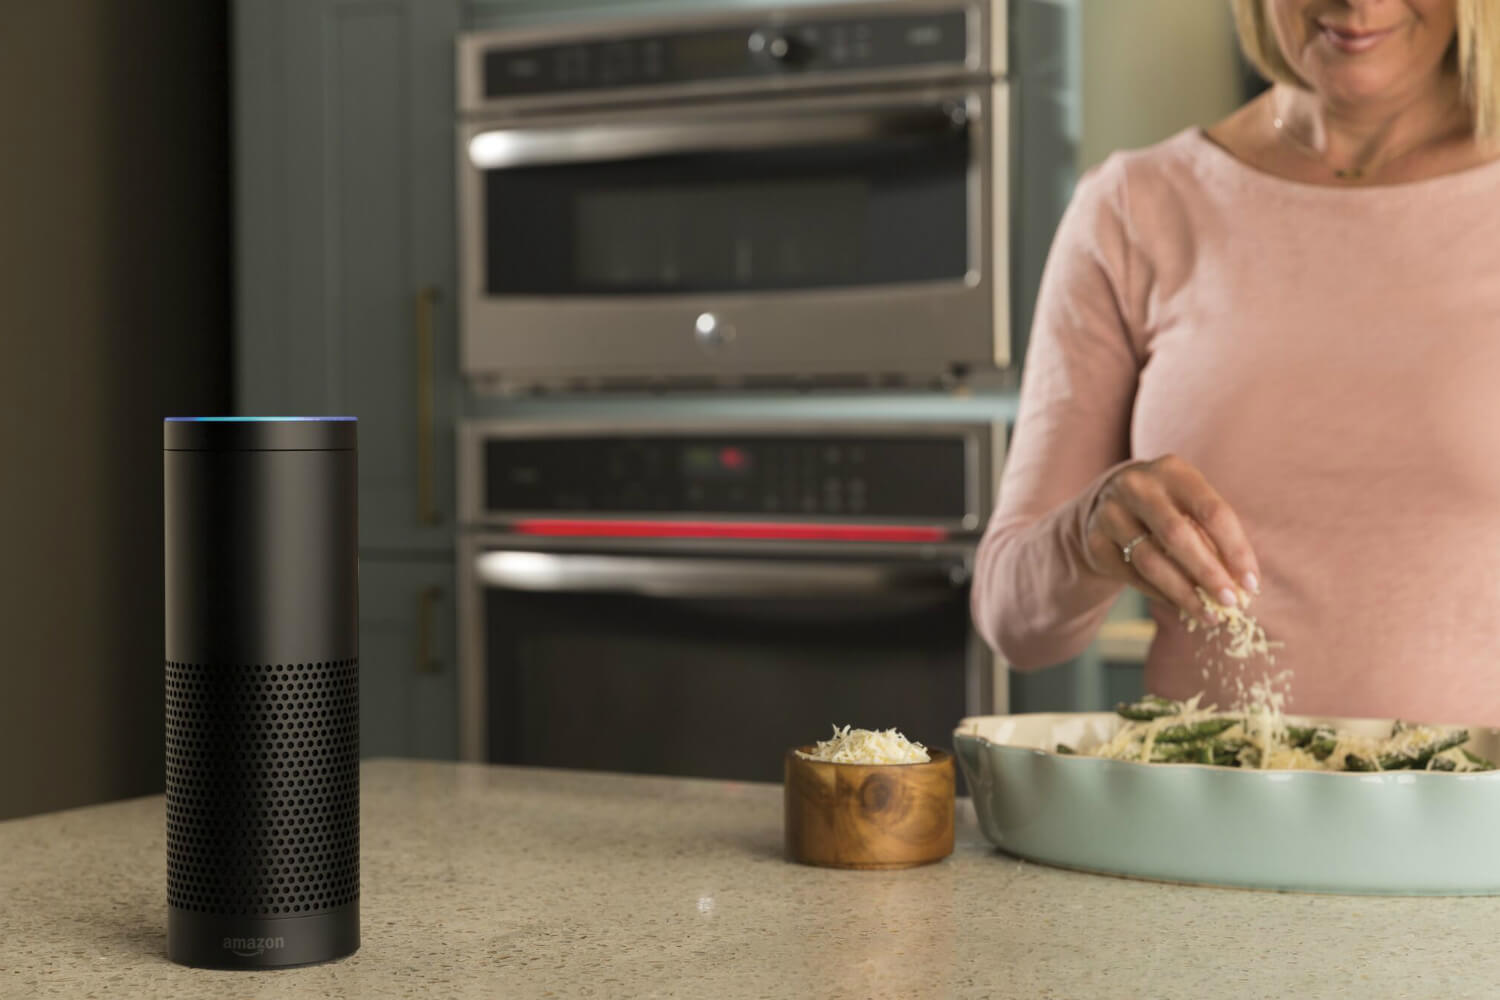 Hackers can turn Amazon Echo into a covert listening device